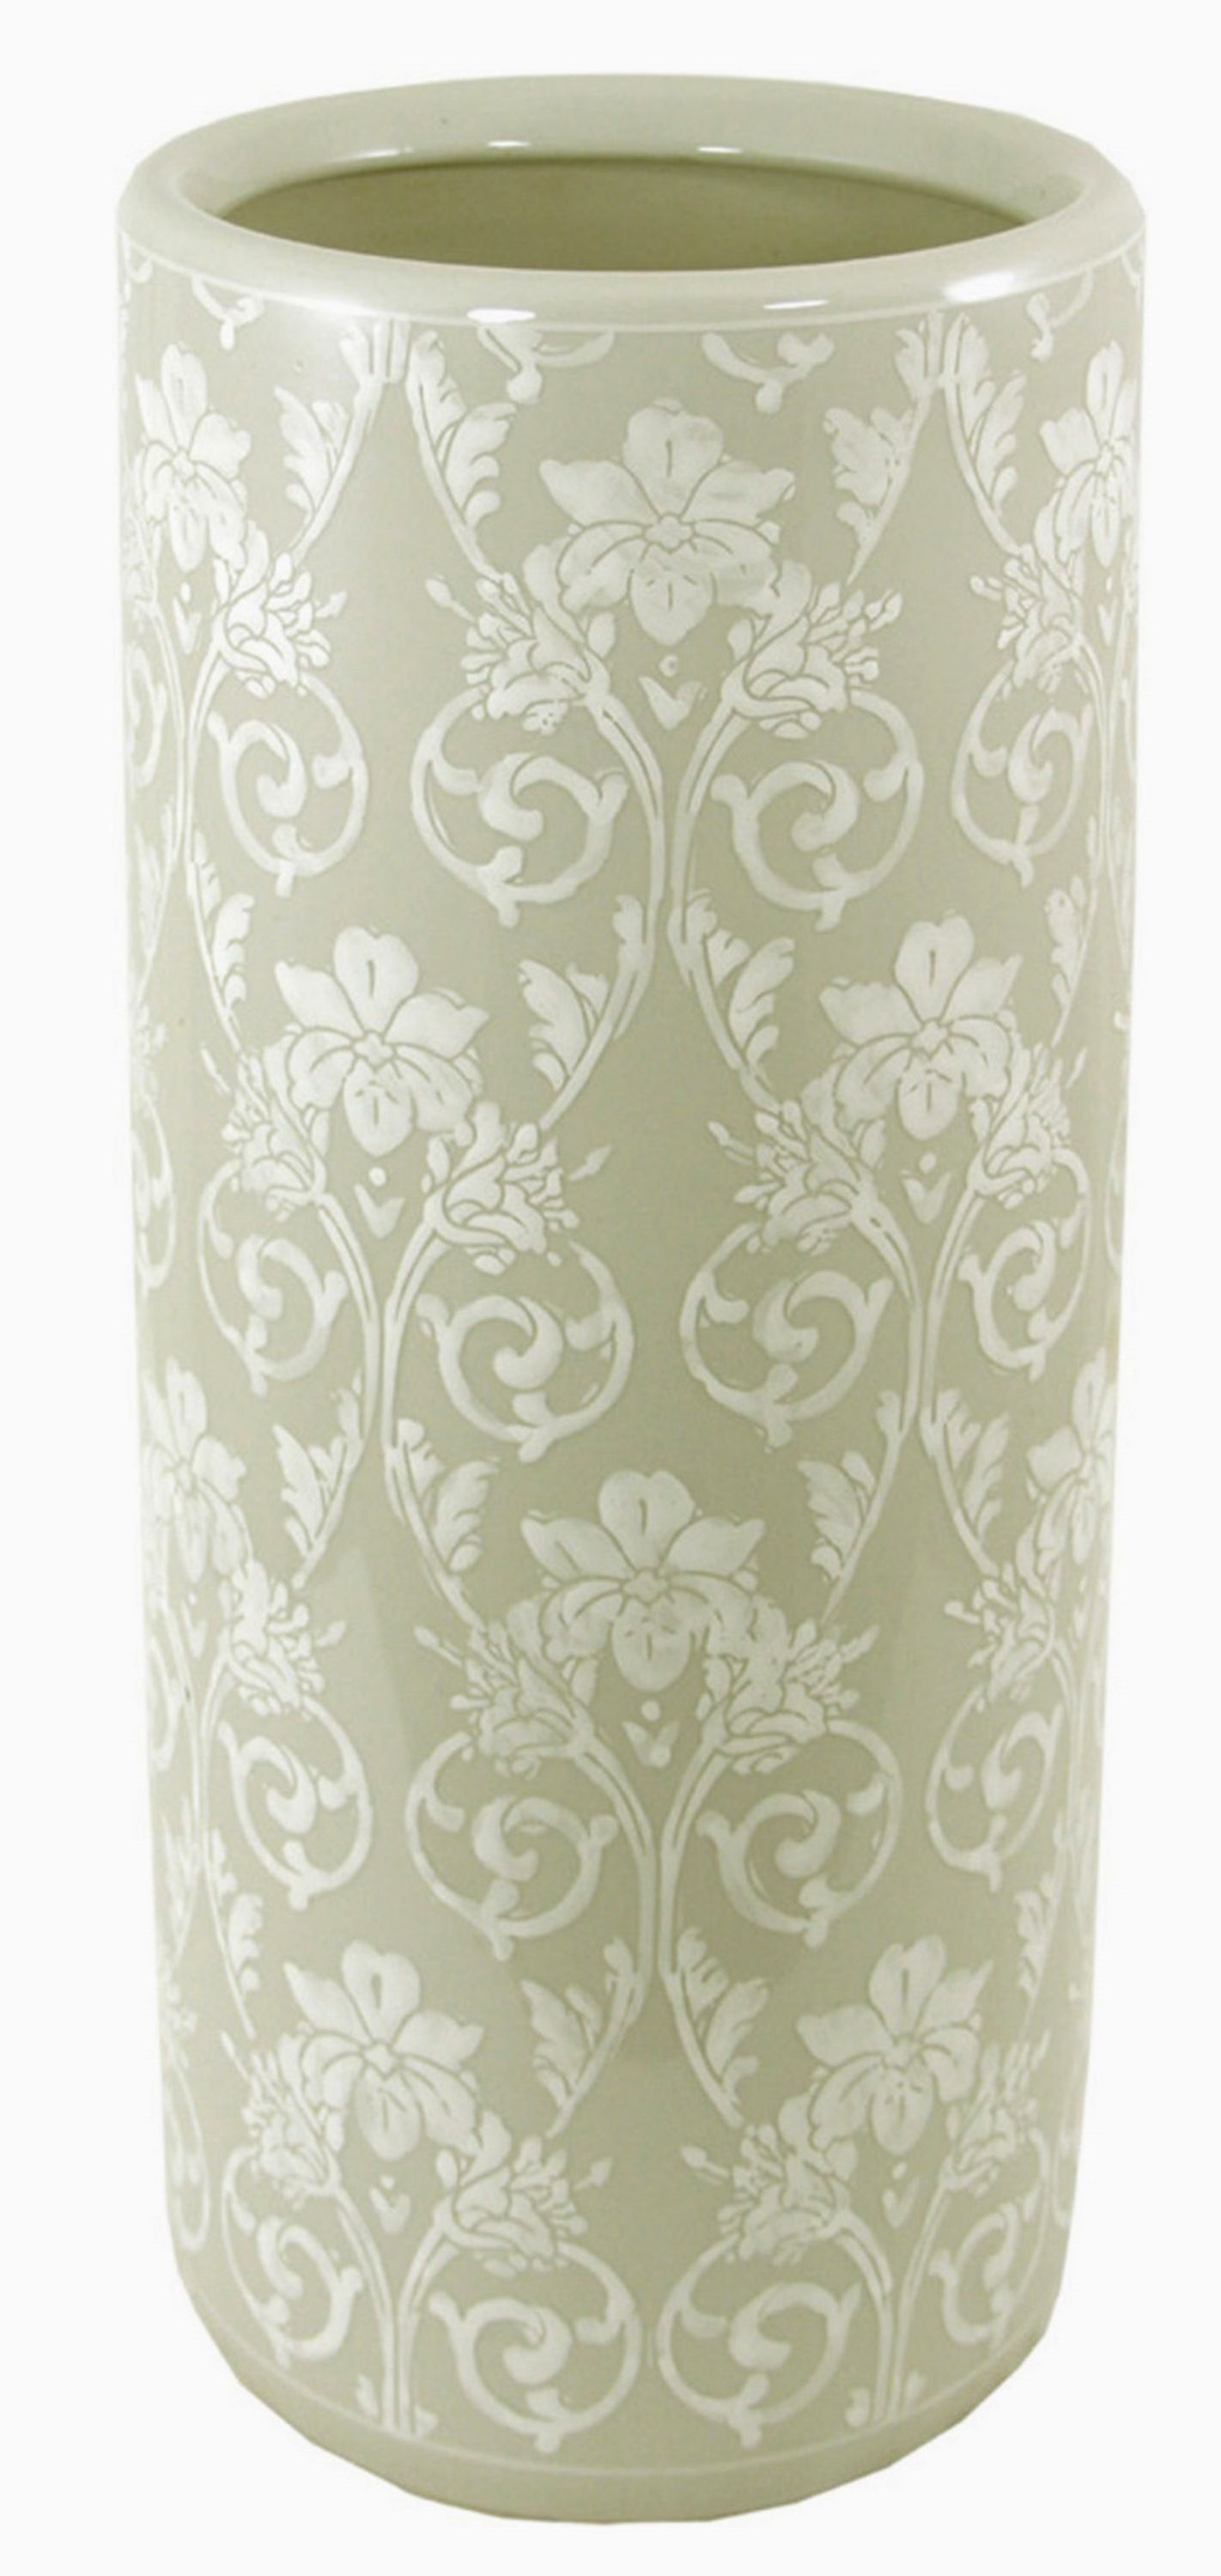 Ceramic Embossed Umbrella Stand, Grey/White Floral Design